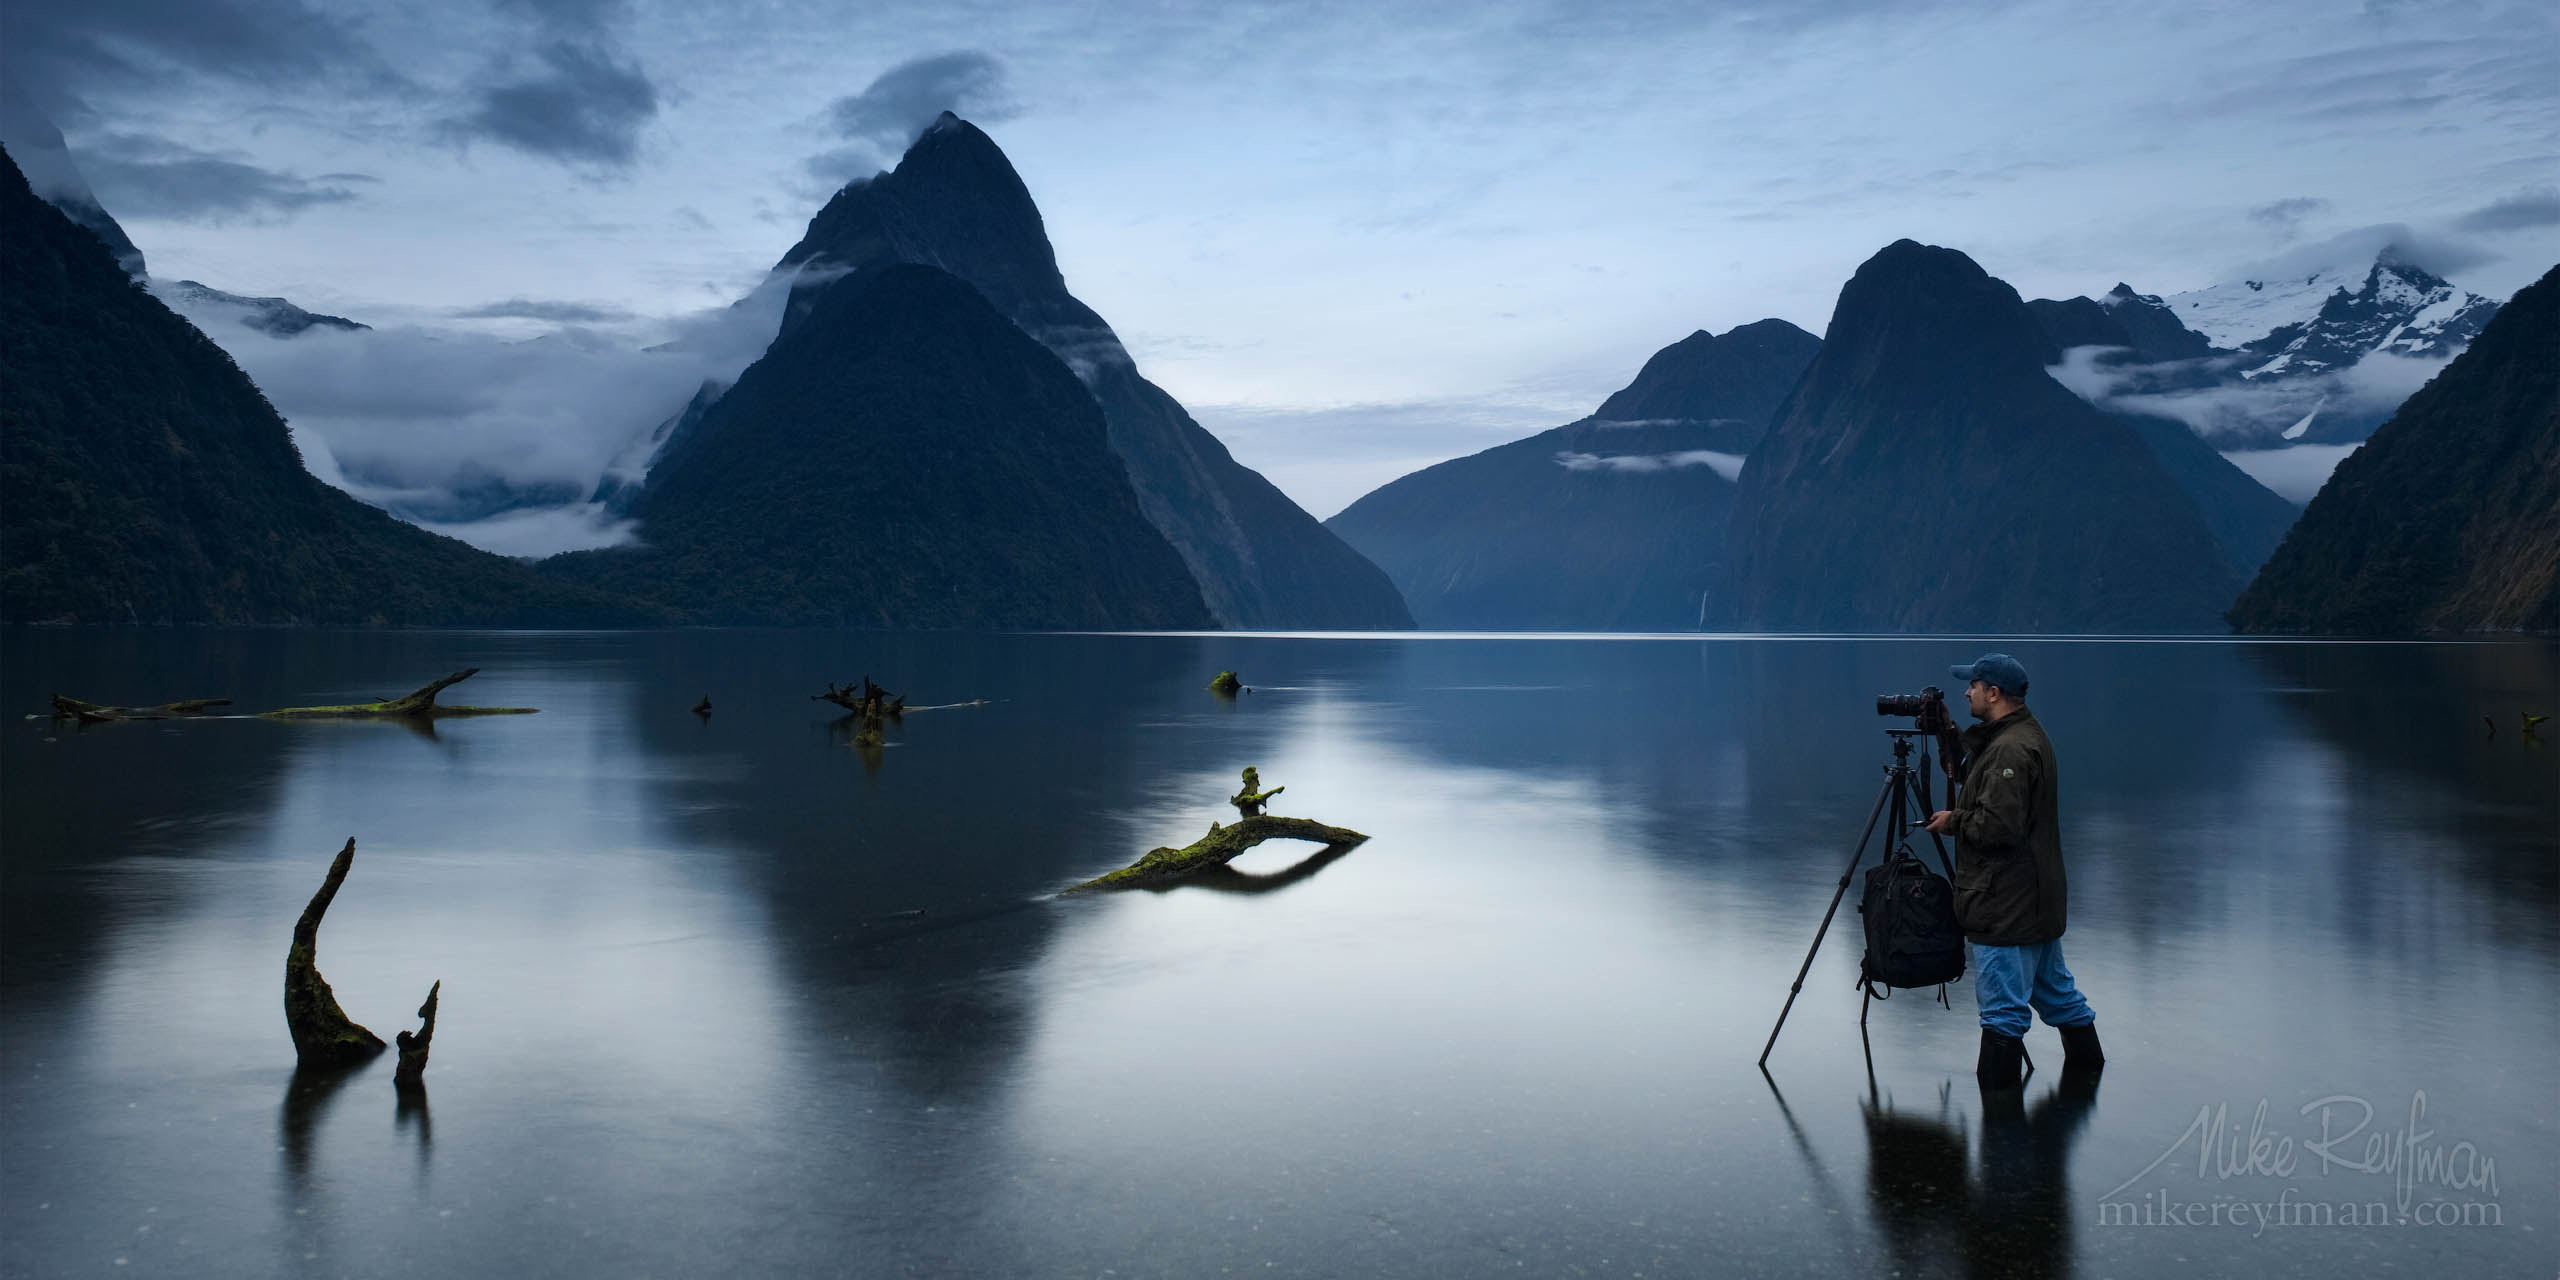 Frozen. Photographer taking photos of Milford Sound at Low tide. Milford Sound, Fiordland National Park, New Zealand. P12-MRMR41708 - Selected panoramic images with 2:1 aspect ratio - Mike Reyfman Photography